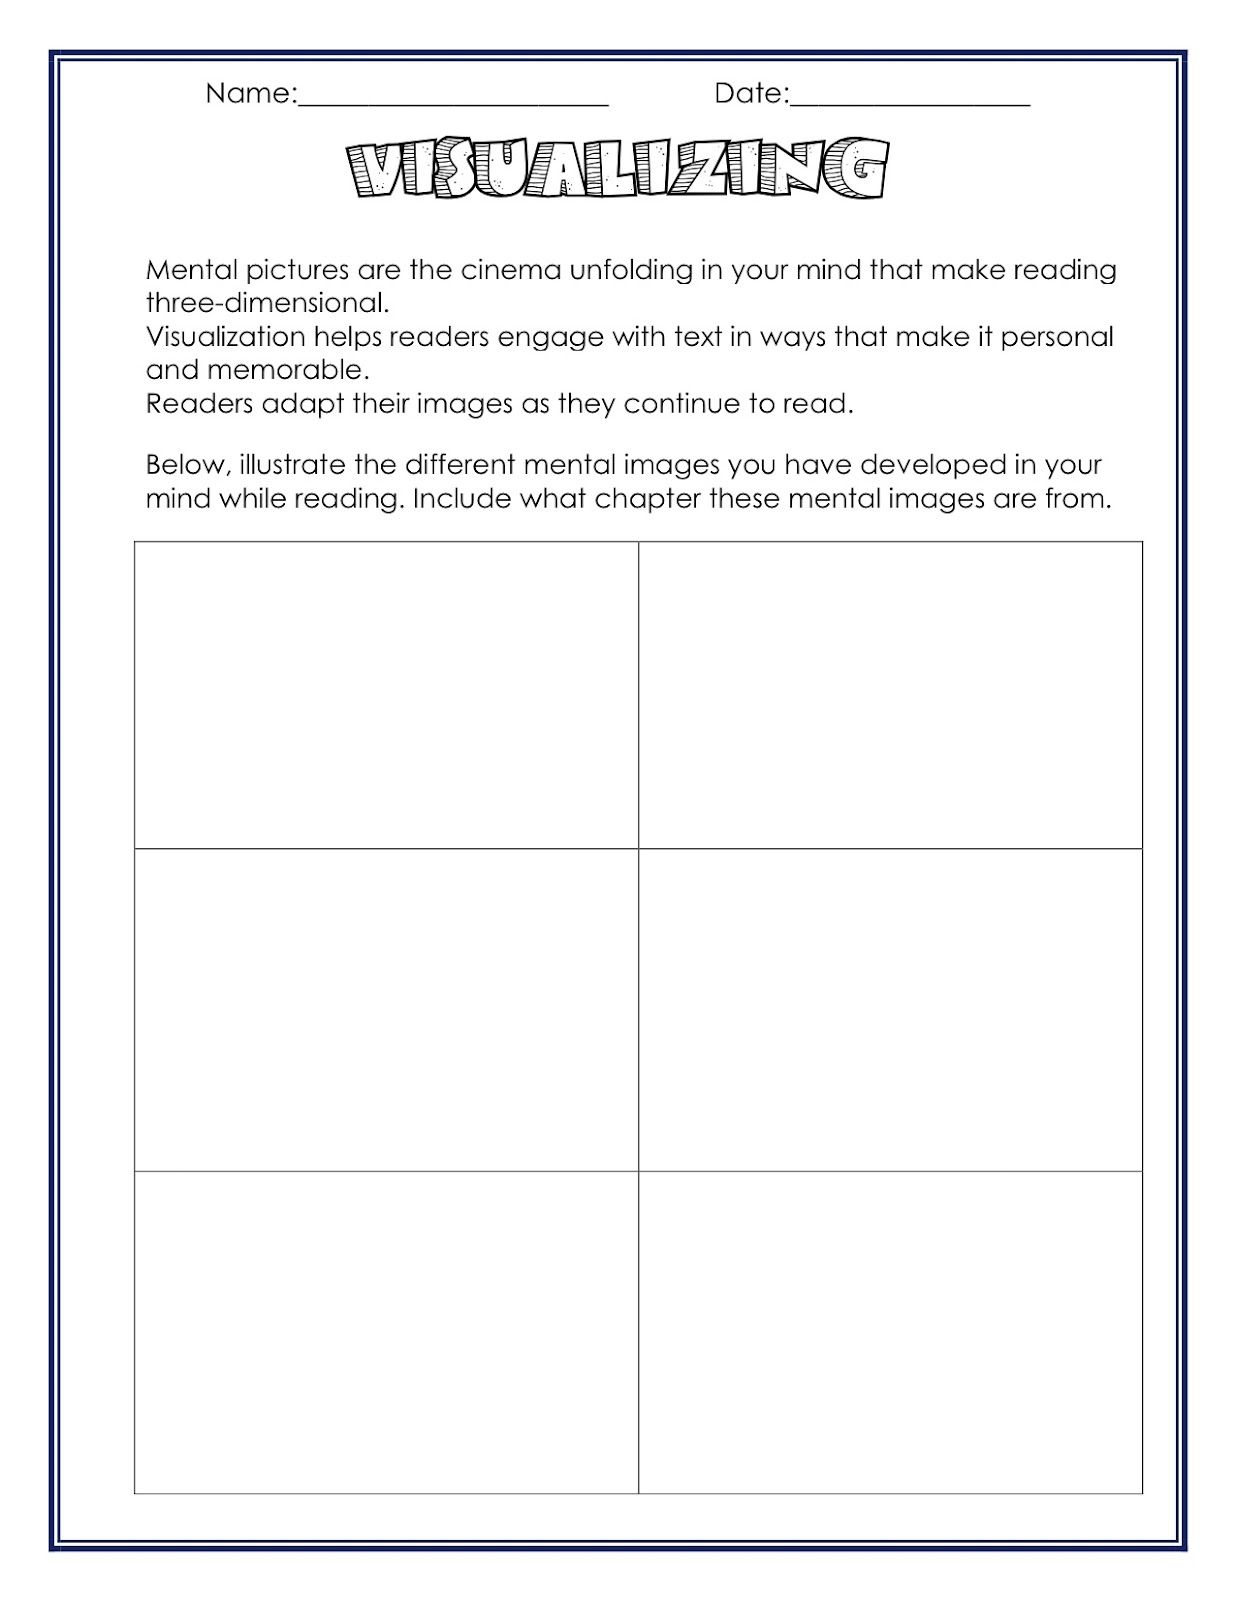 Worksheets Guided Reading Worksheets neat visualizing worksheet ideas for school pinterest amanda students to use while reading